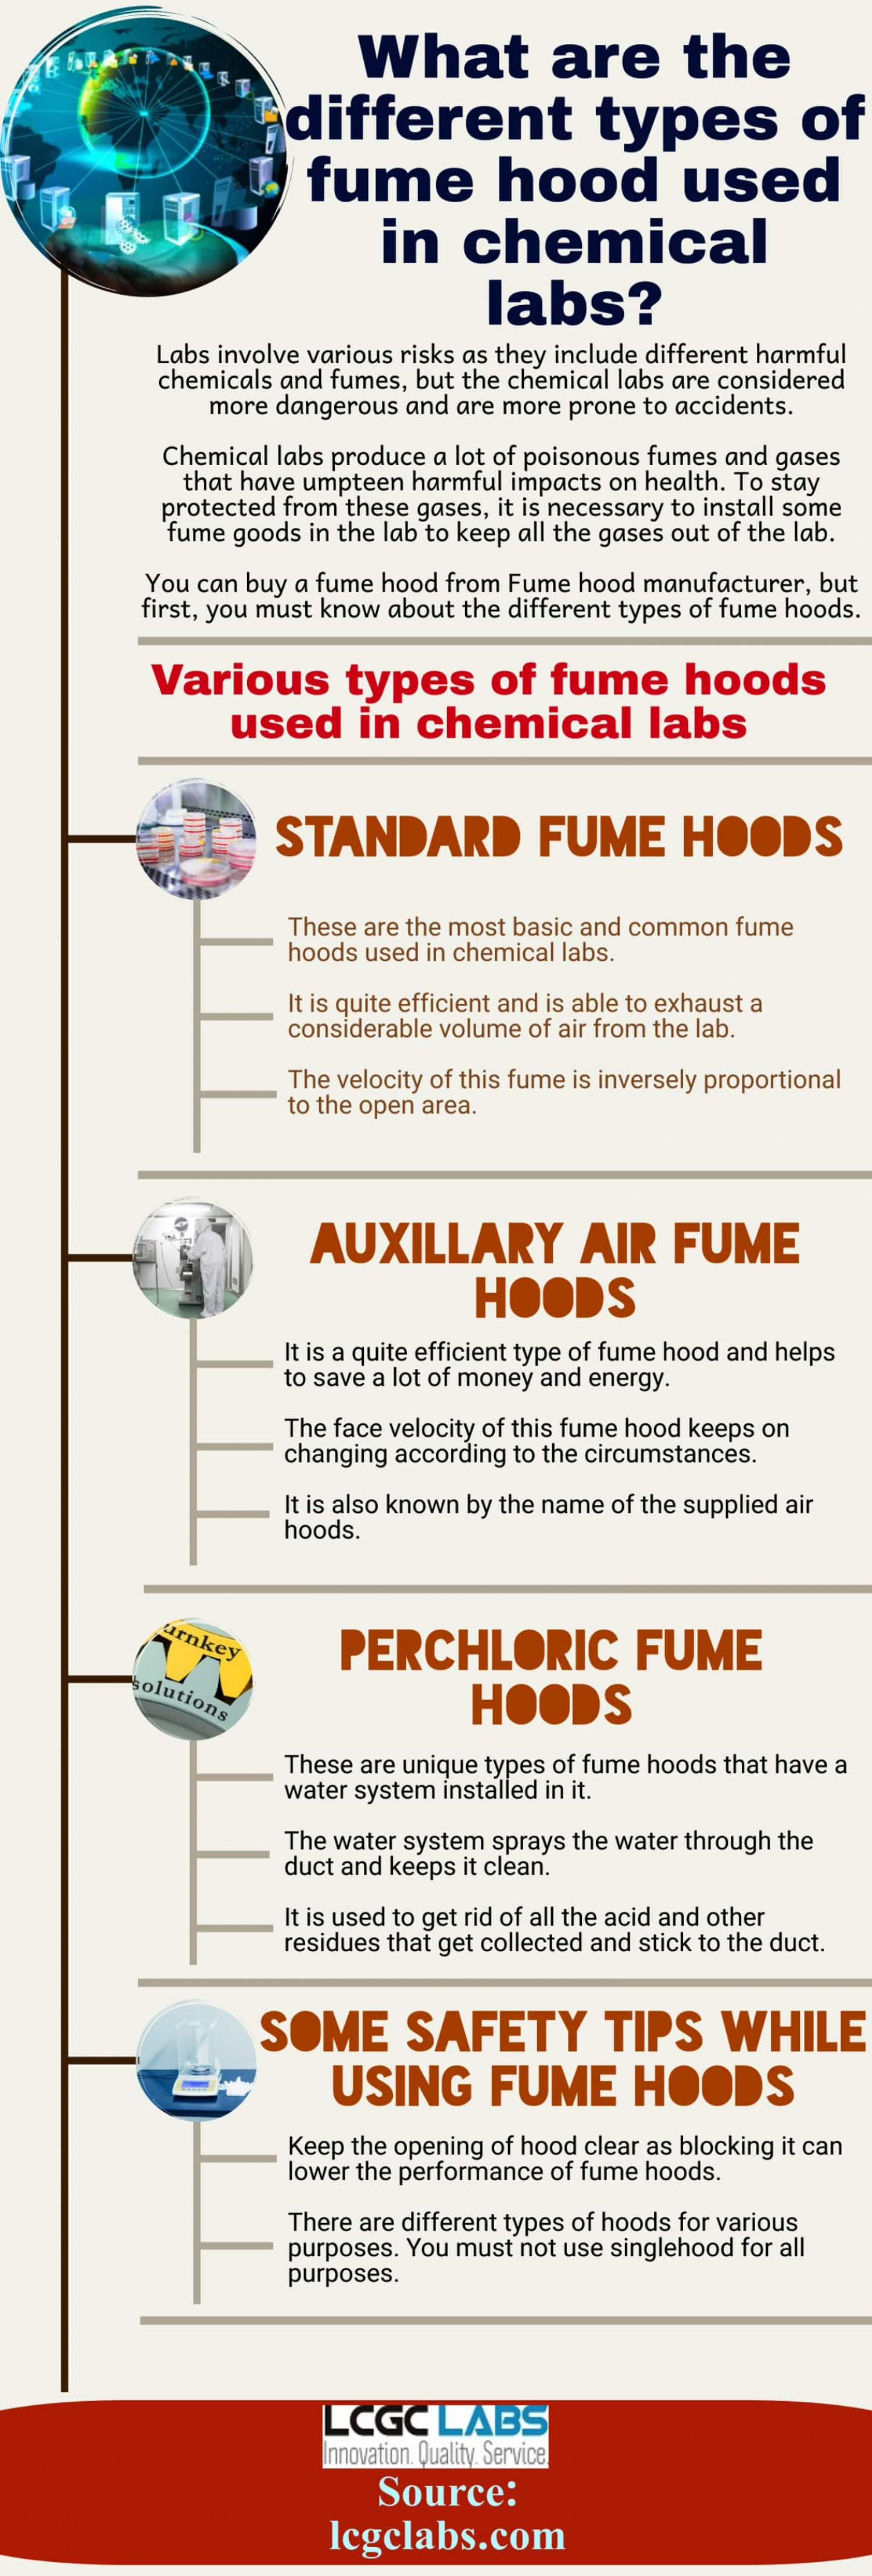 Buy a fume hood from Fume hood manufacturer Infographic